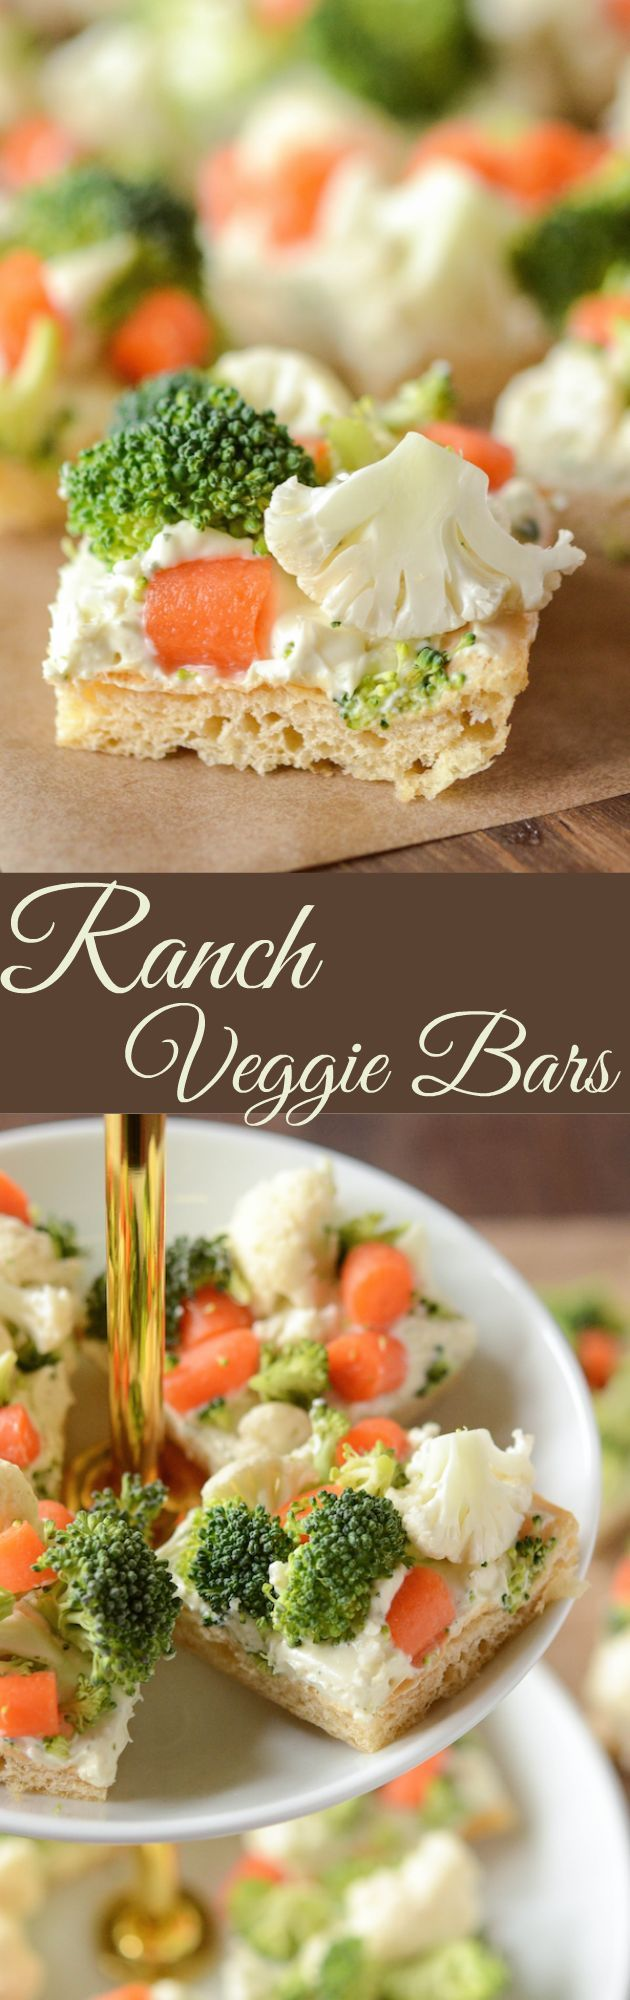 Ranch Veggie Bars - my favorite appetizer for a baby shower or to bring to a work potluck!